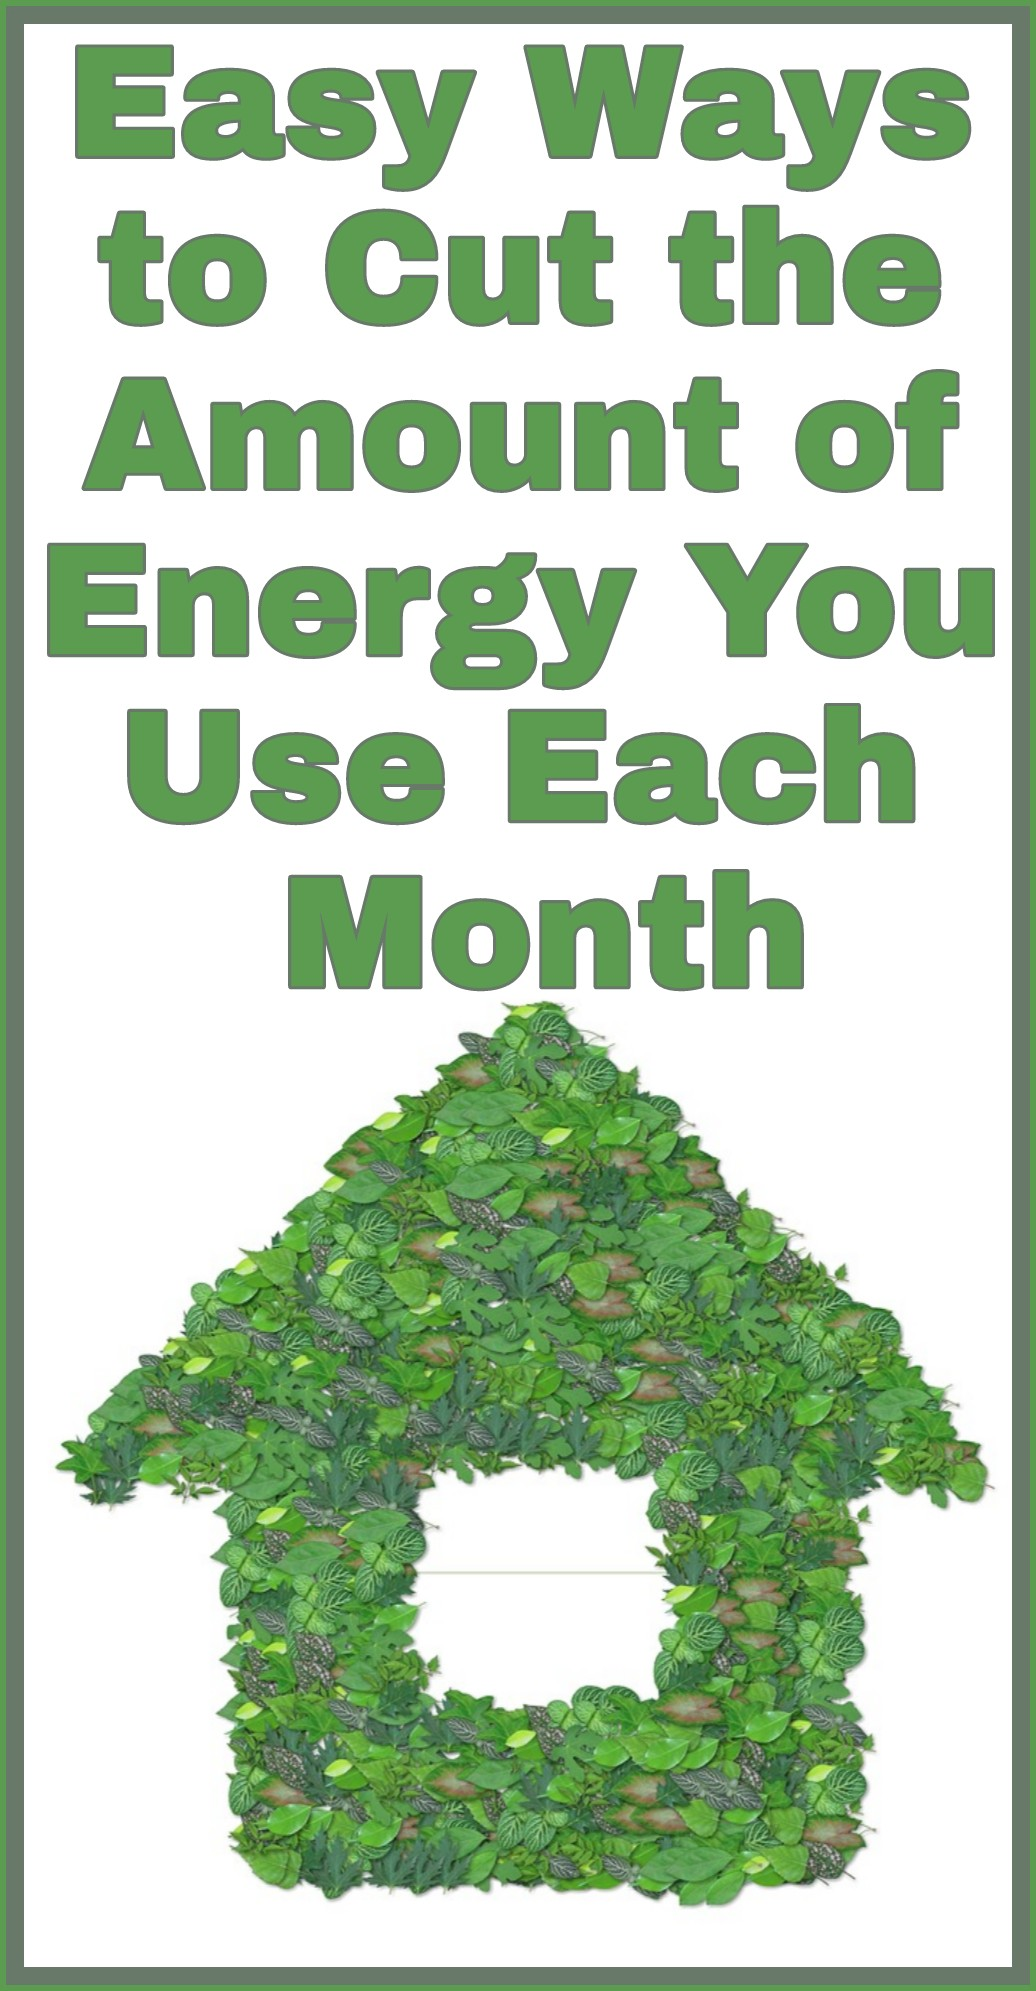 Easy Ways to Cut the Amount of Energy You Use Each Month